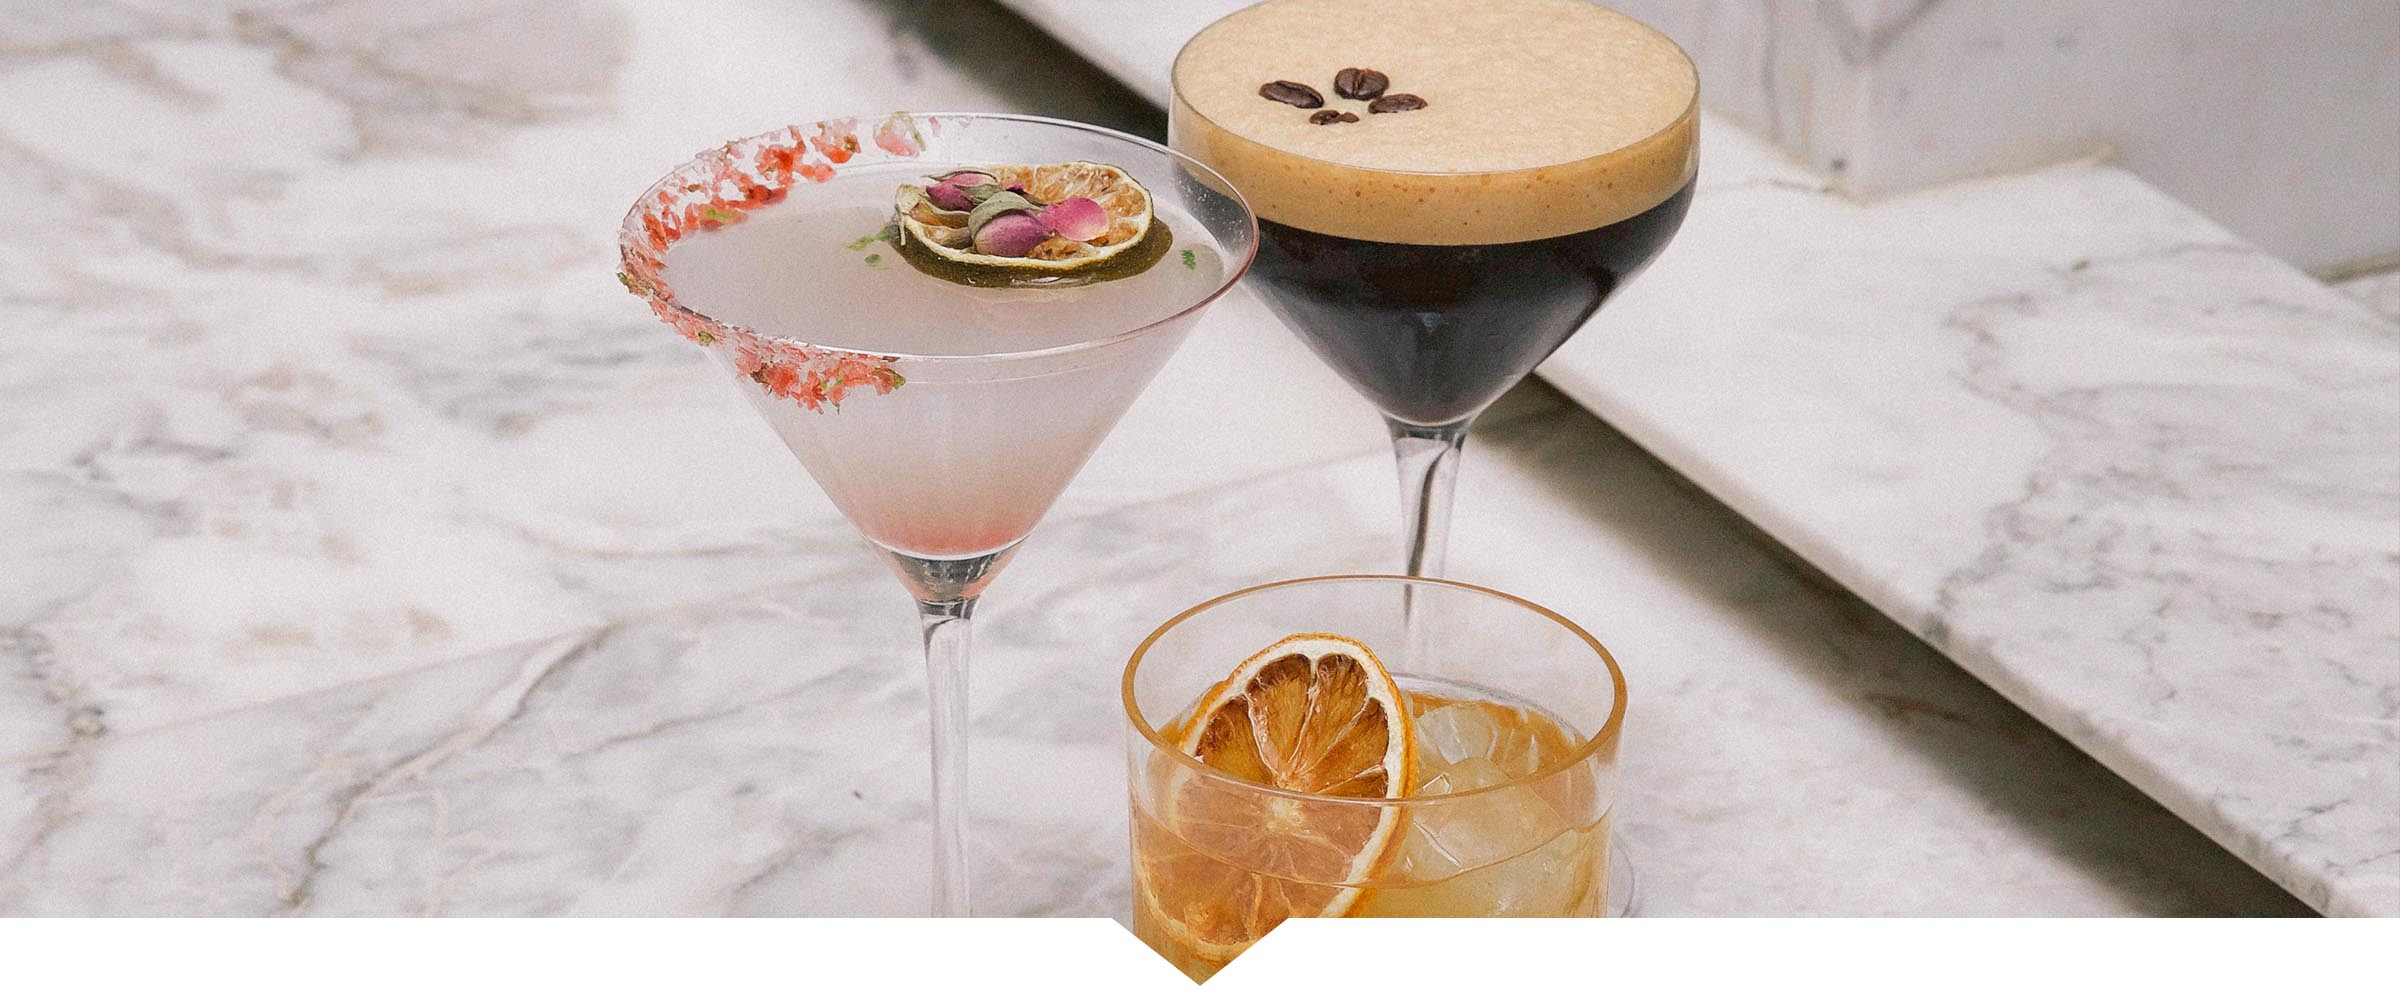 Good Taste: Festive Cocktails